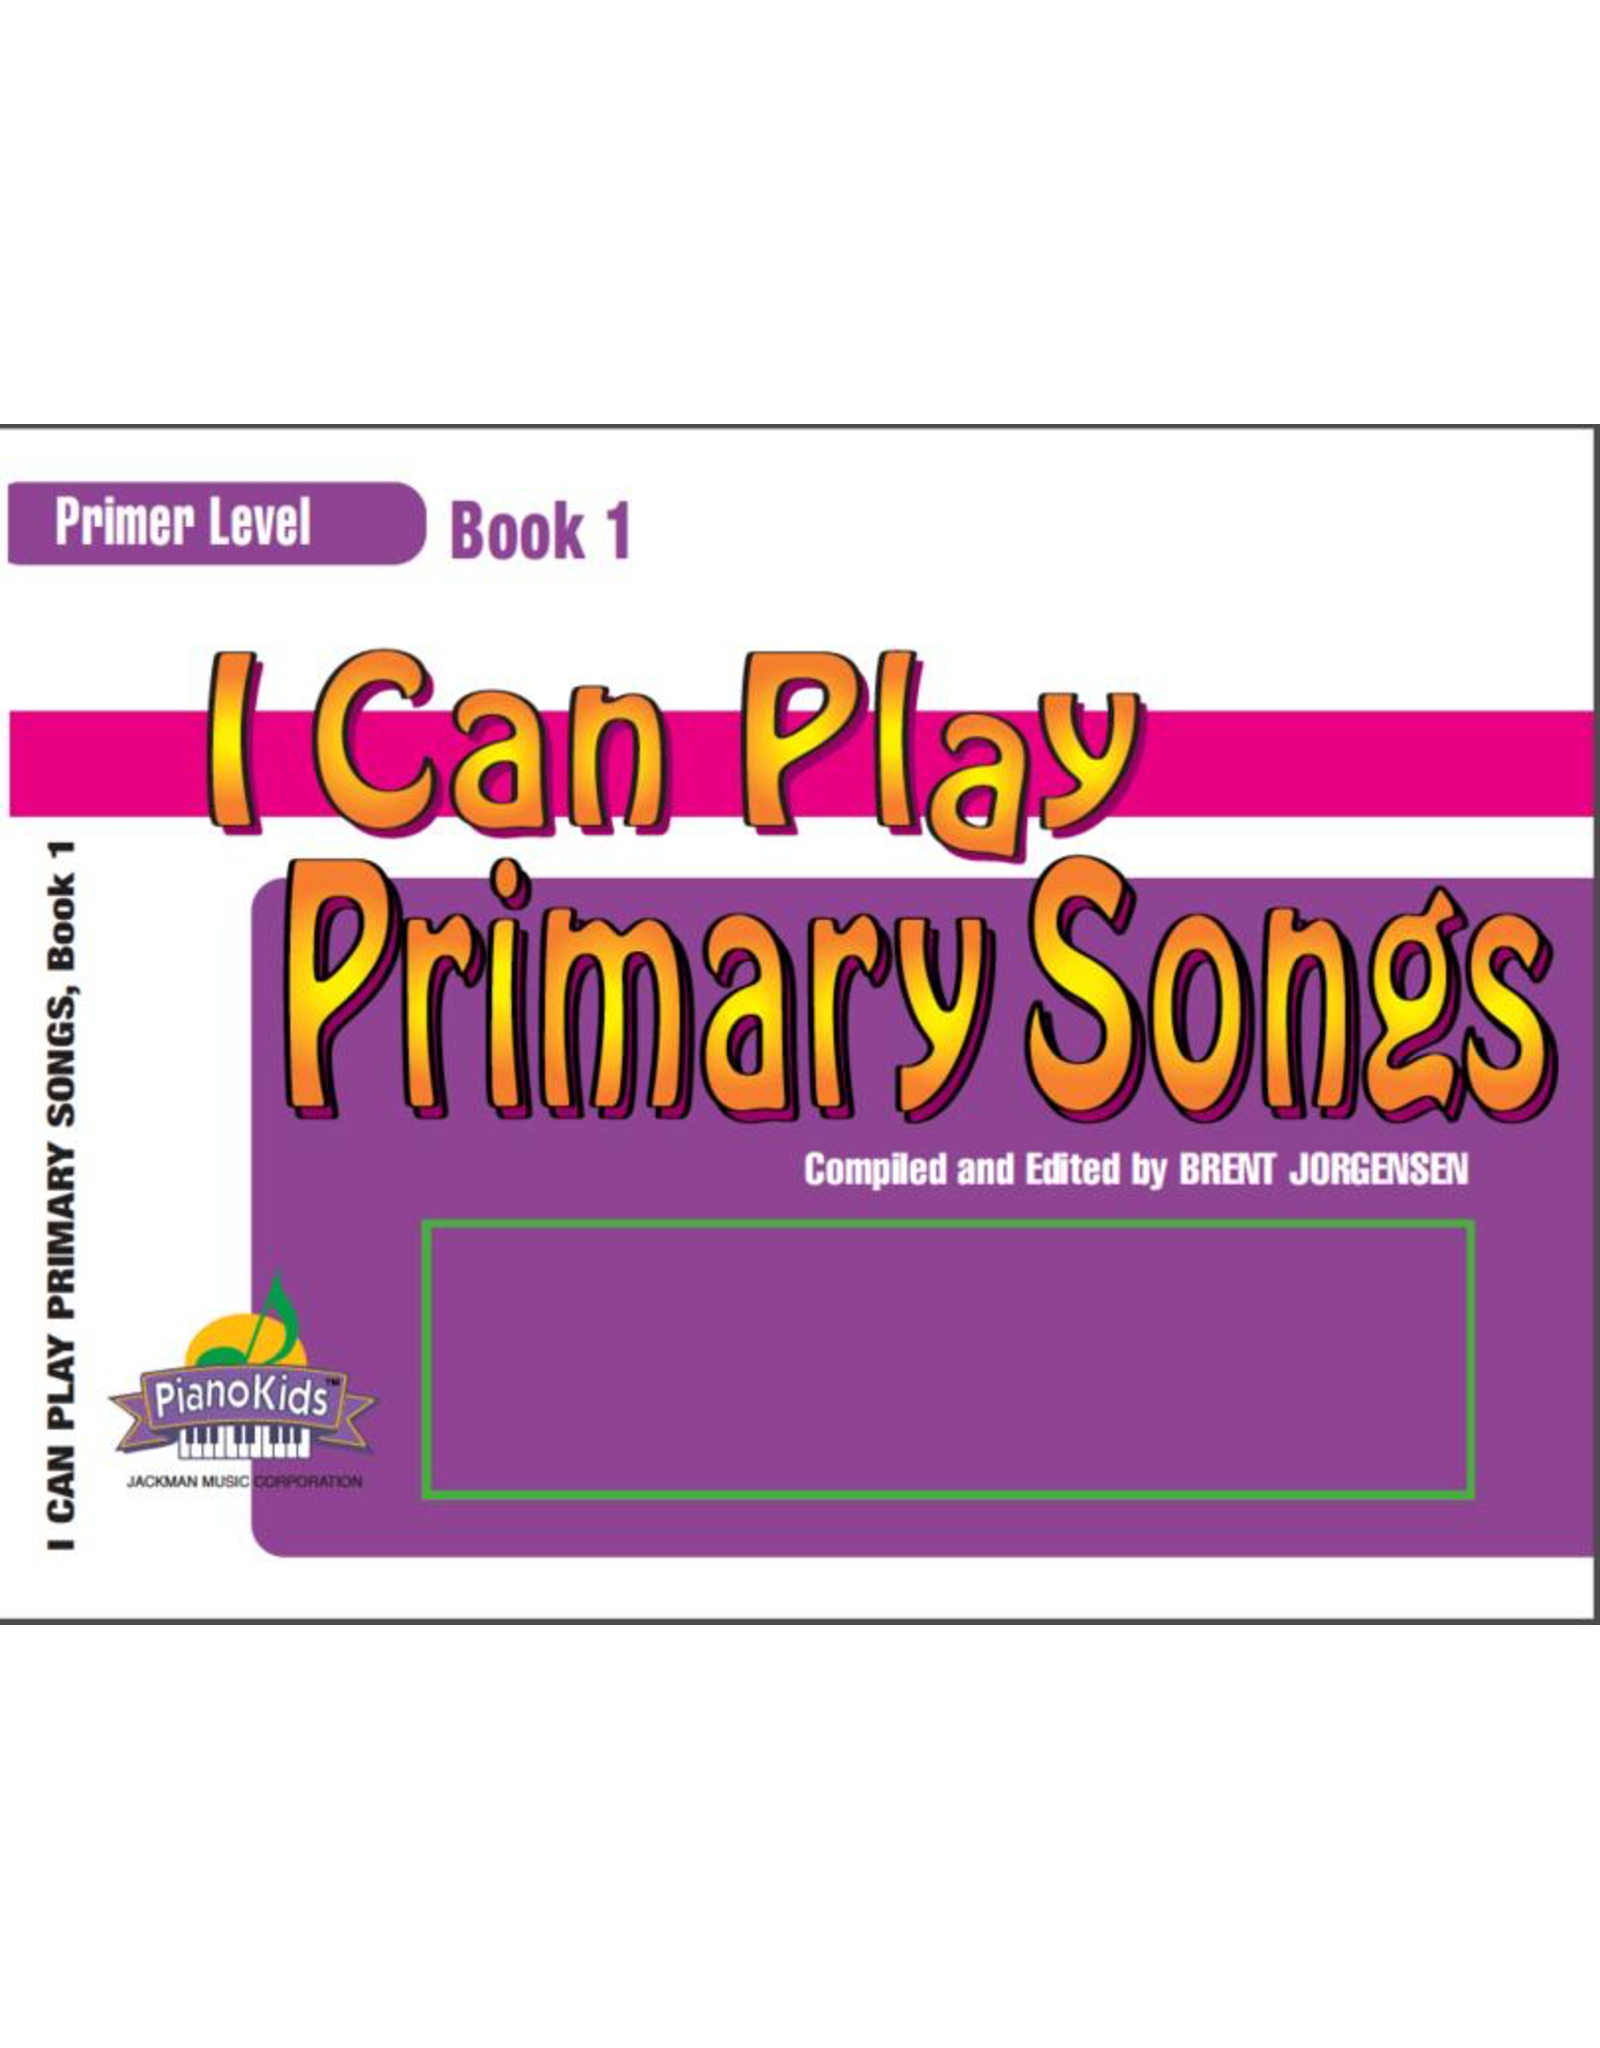 Jackman Music I Can Play Primary Songs, Book 1 Primer Level arr. Brent Jorgensen